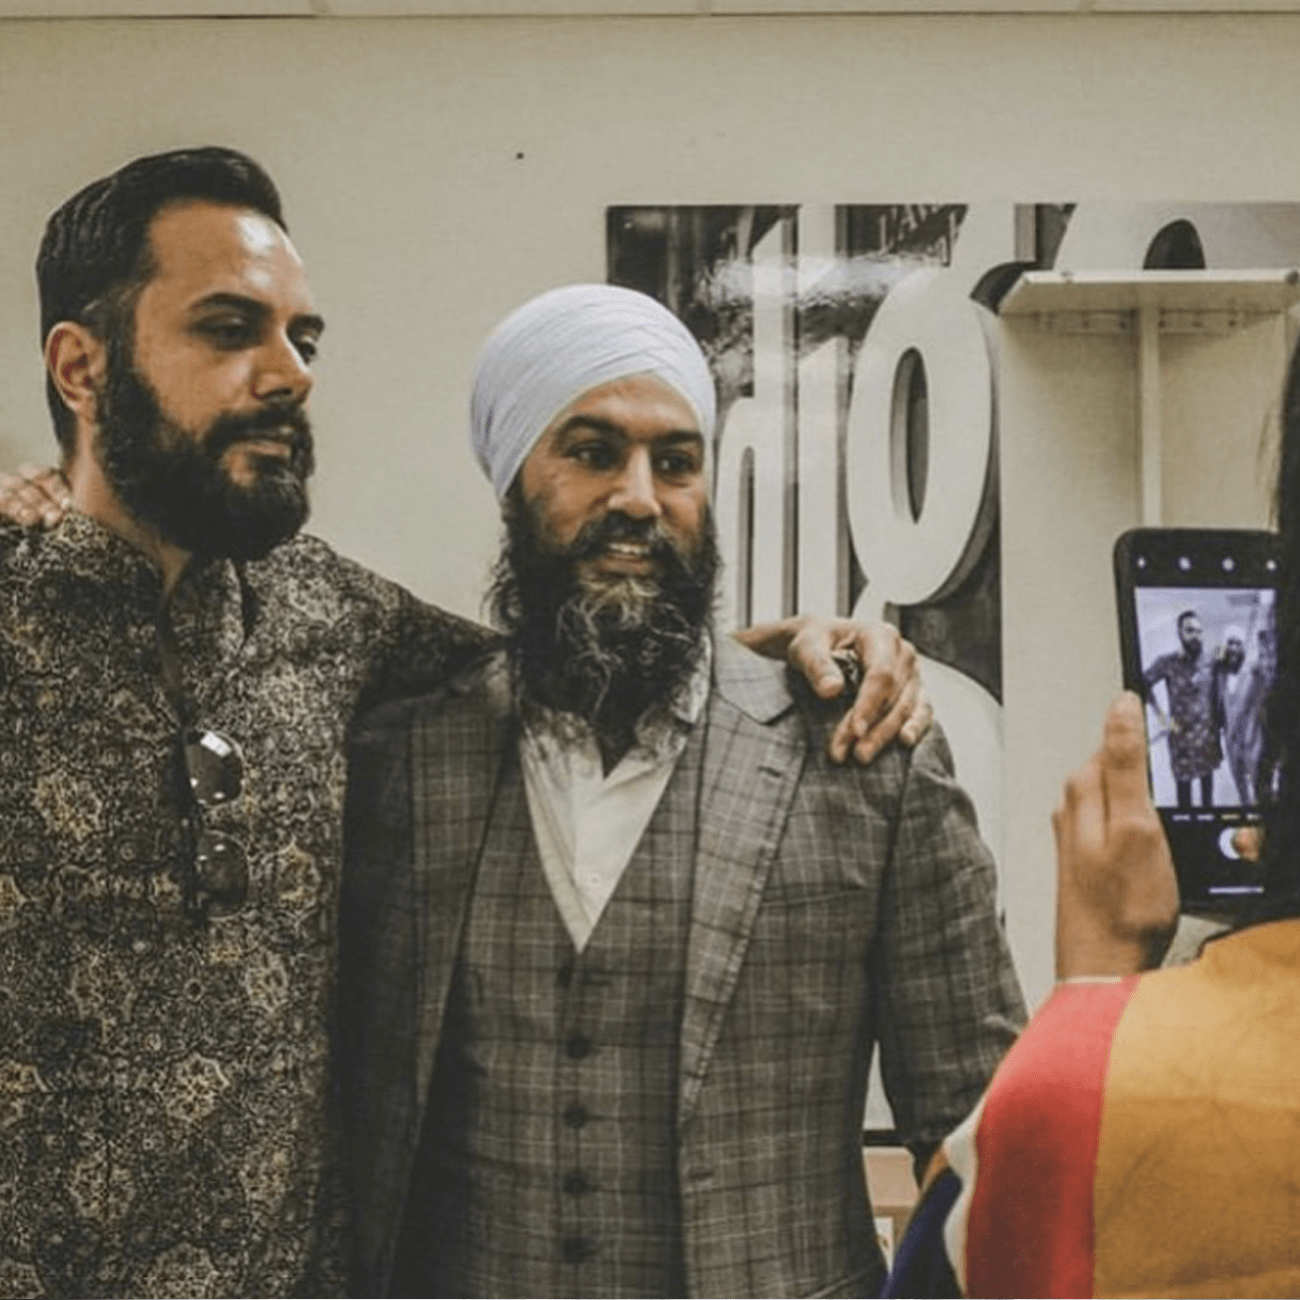 Jagmeet Singh and Mo Dhaliwal - Skyrocket Digital, a digital agency in Vancouver, BC